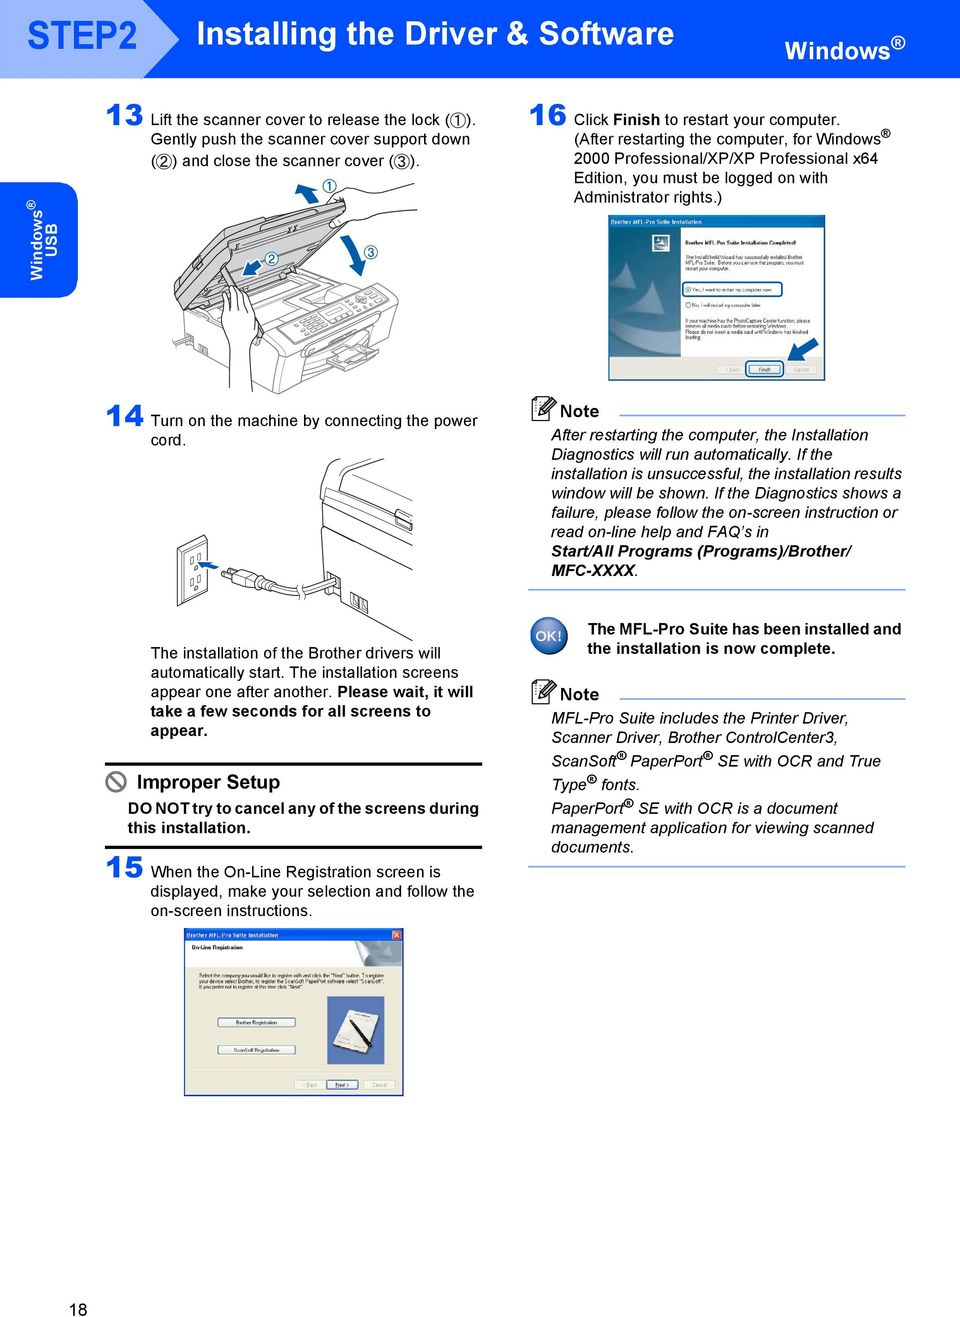 ) 14 Turn on the machine by connecting the power cord. After restarting the computer, the Installation Diagnostics will run automatically.